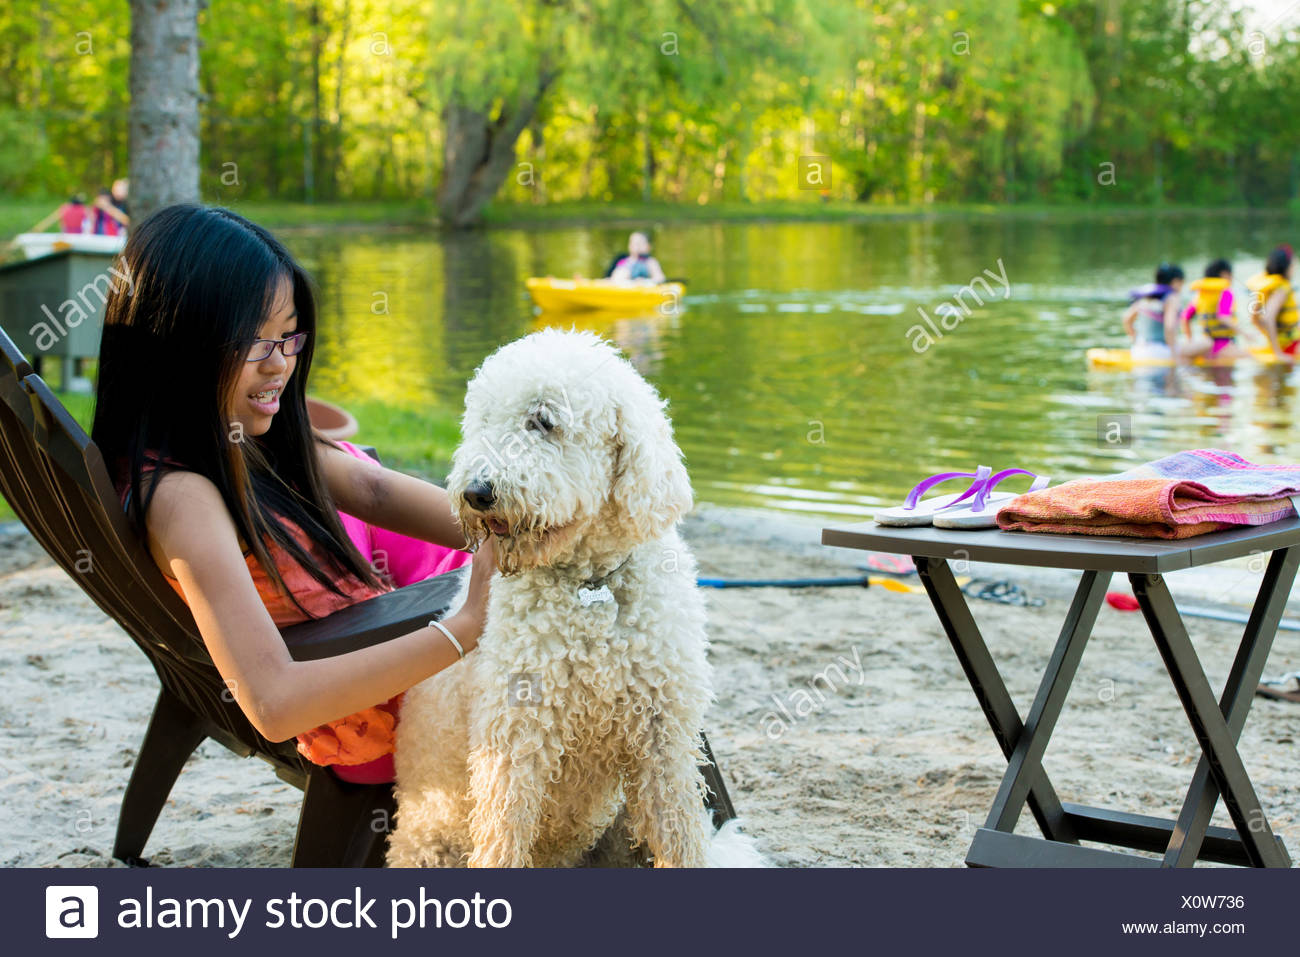 Girl sitting on chair by lake with dog Stock Photo